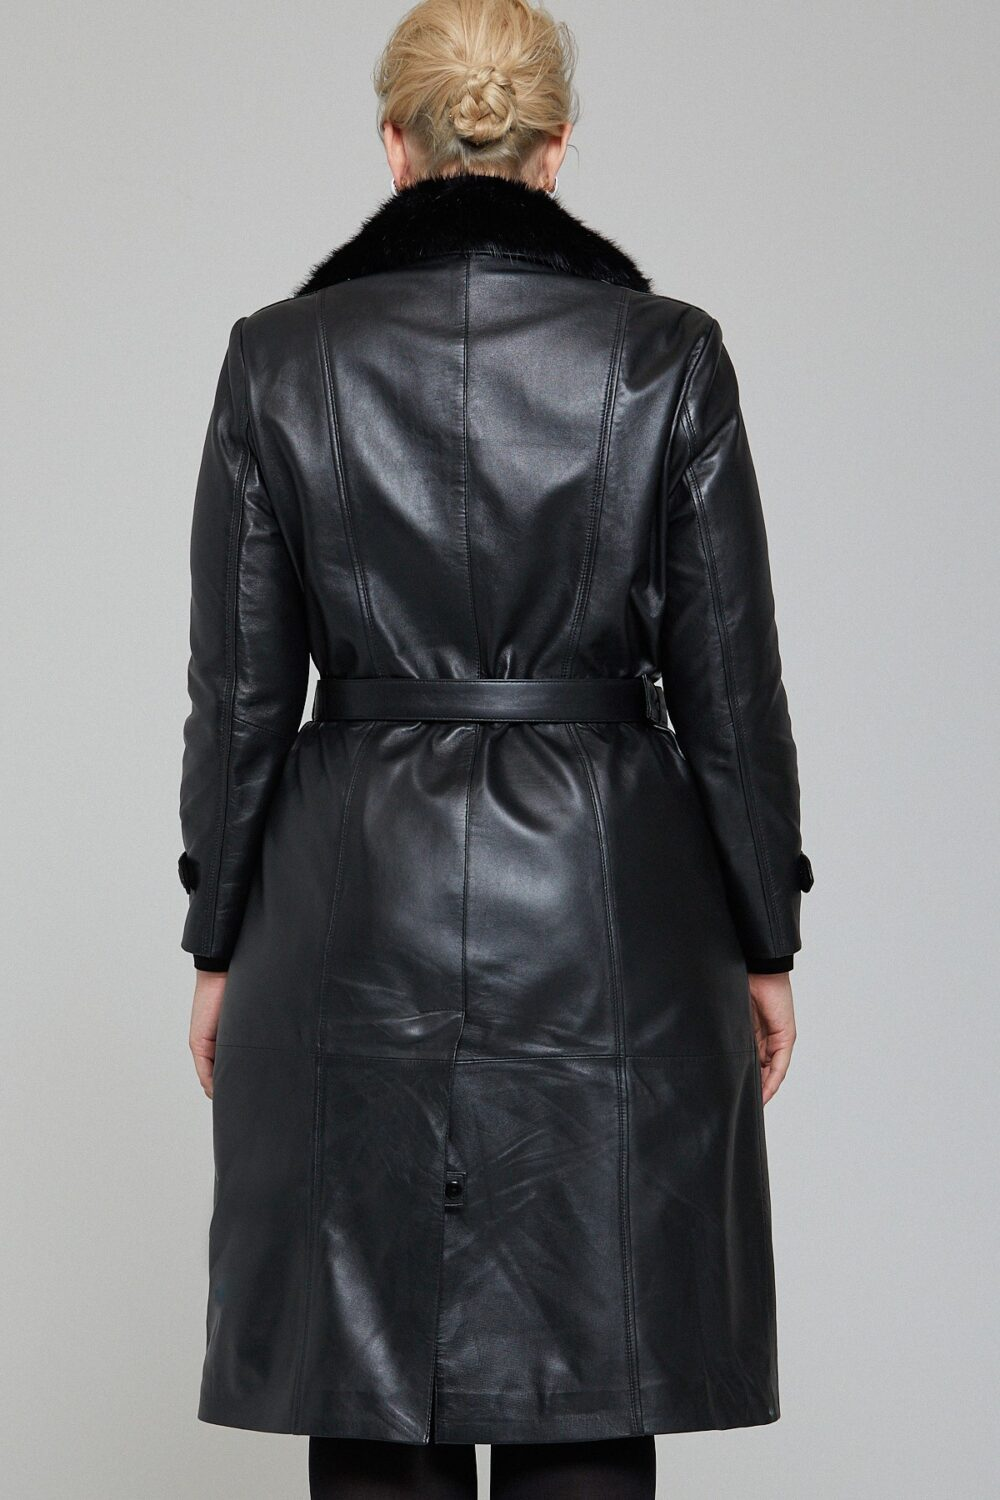 Real Leather Coats